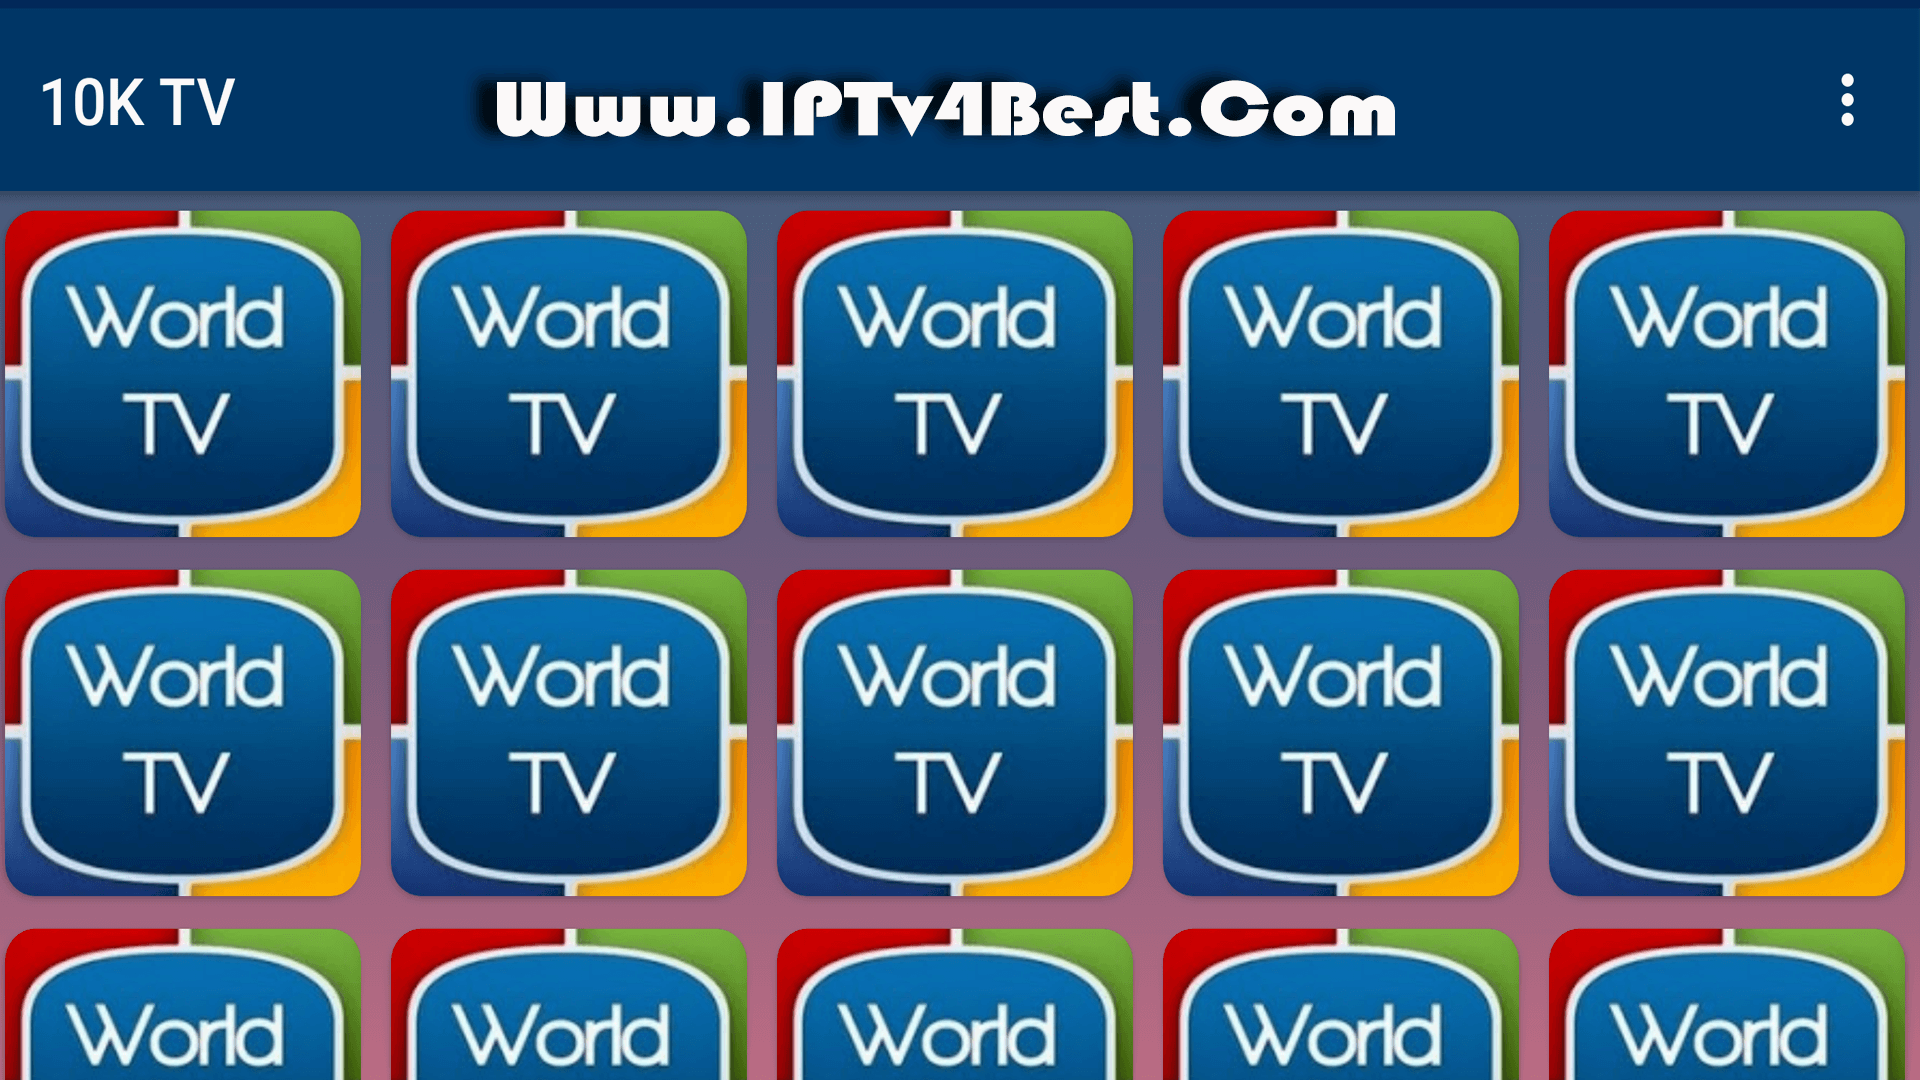 Watch Tv APK With This App Reshyar TVs APK By IPTV4BEST.COM